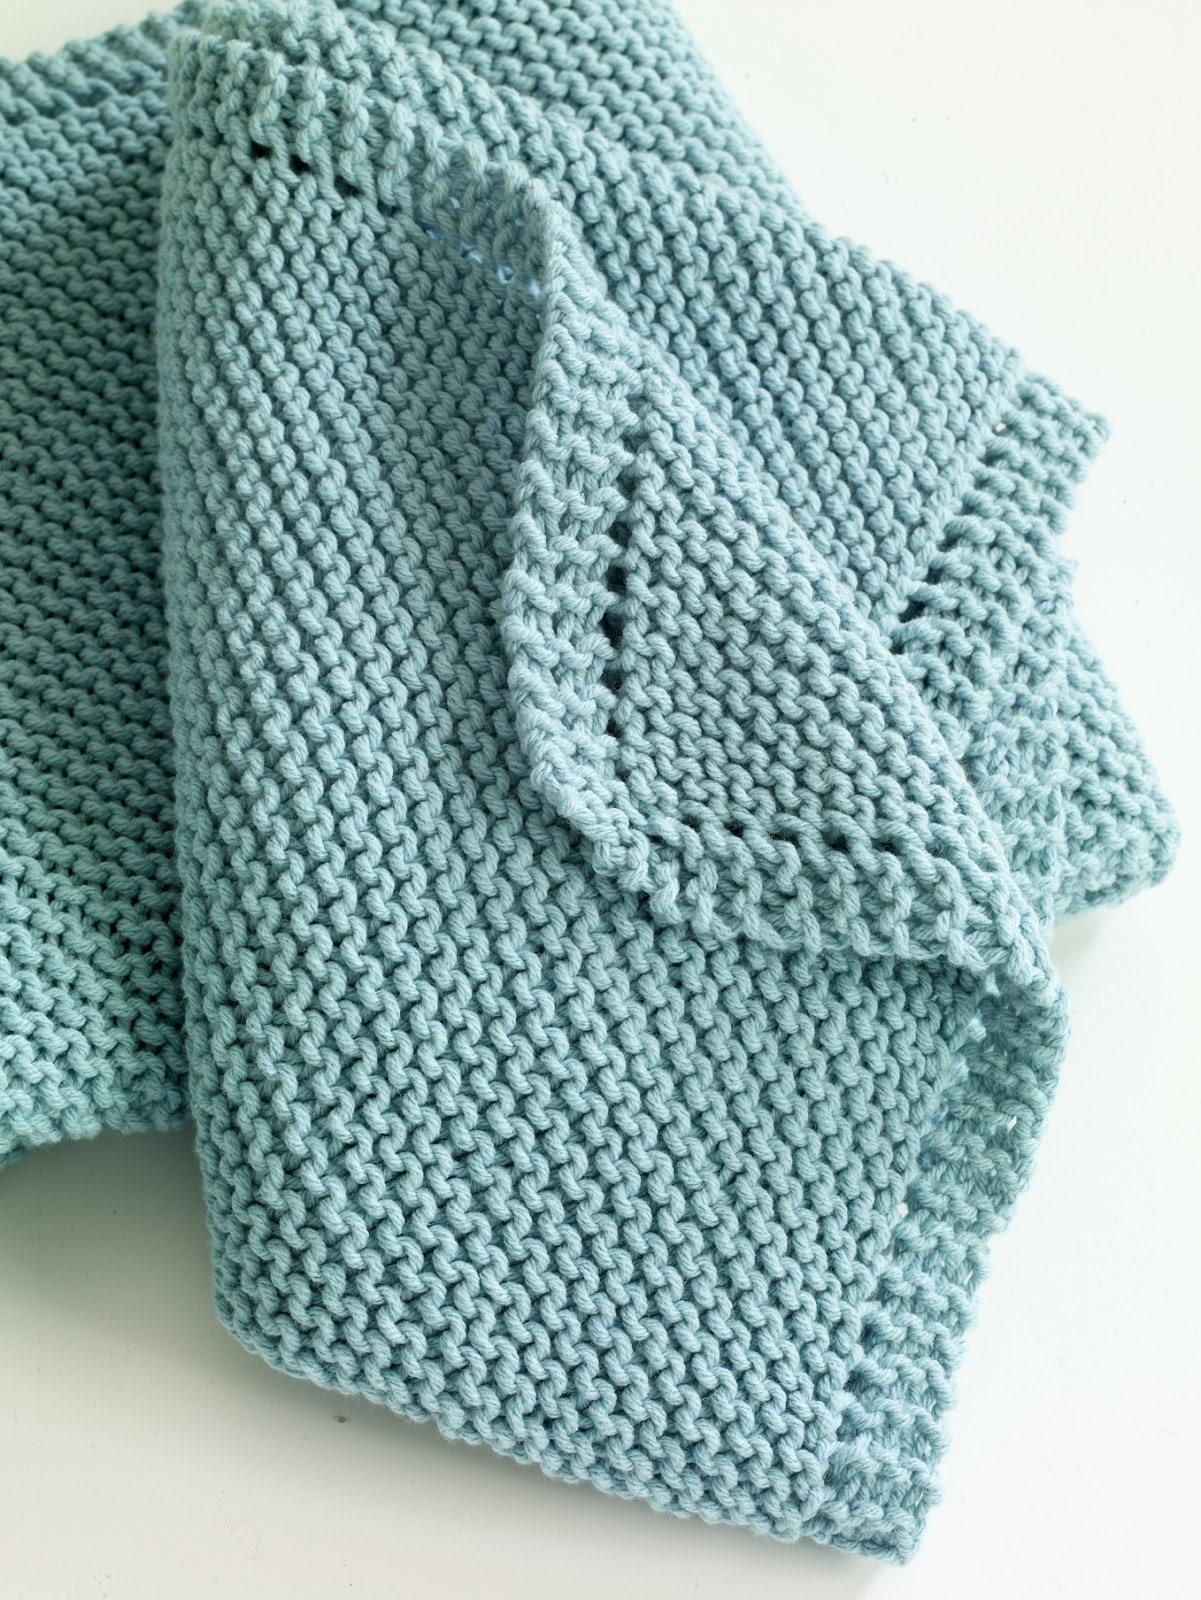 Knitting Pattern For Baby Blanket Beginner : Serenity Knits